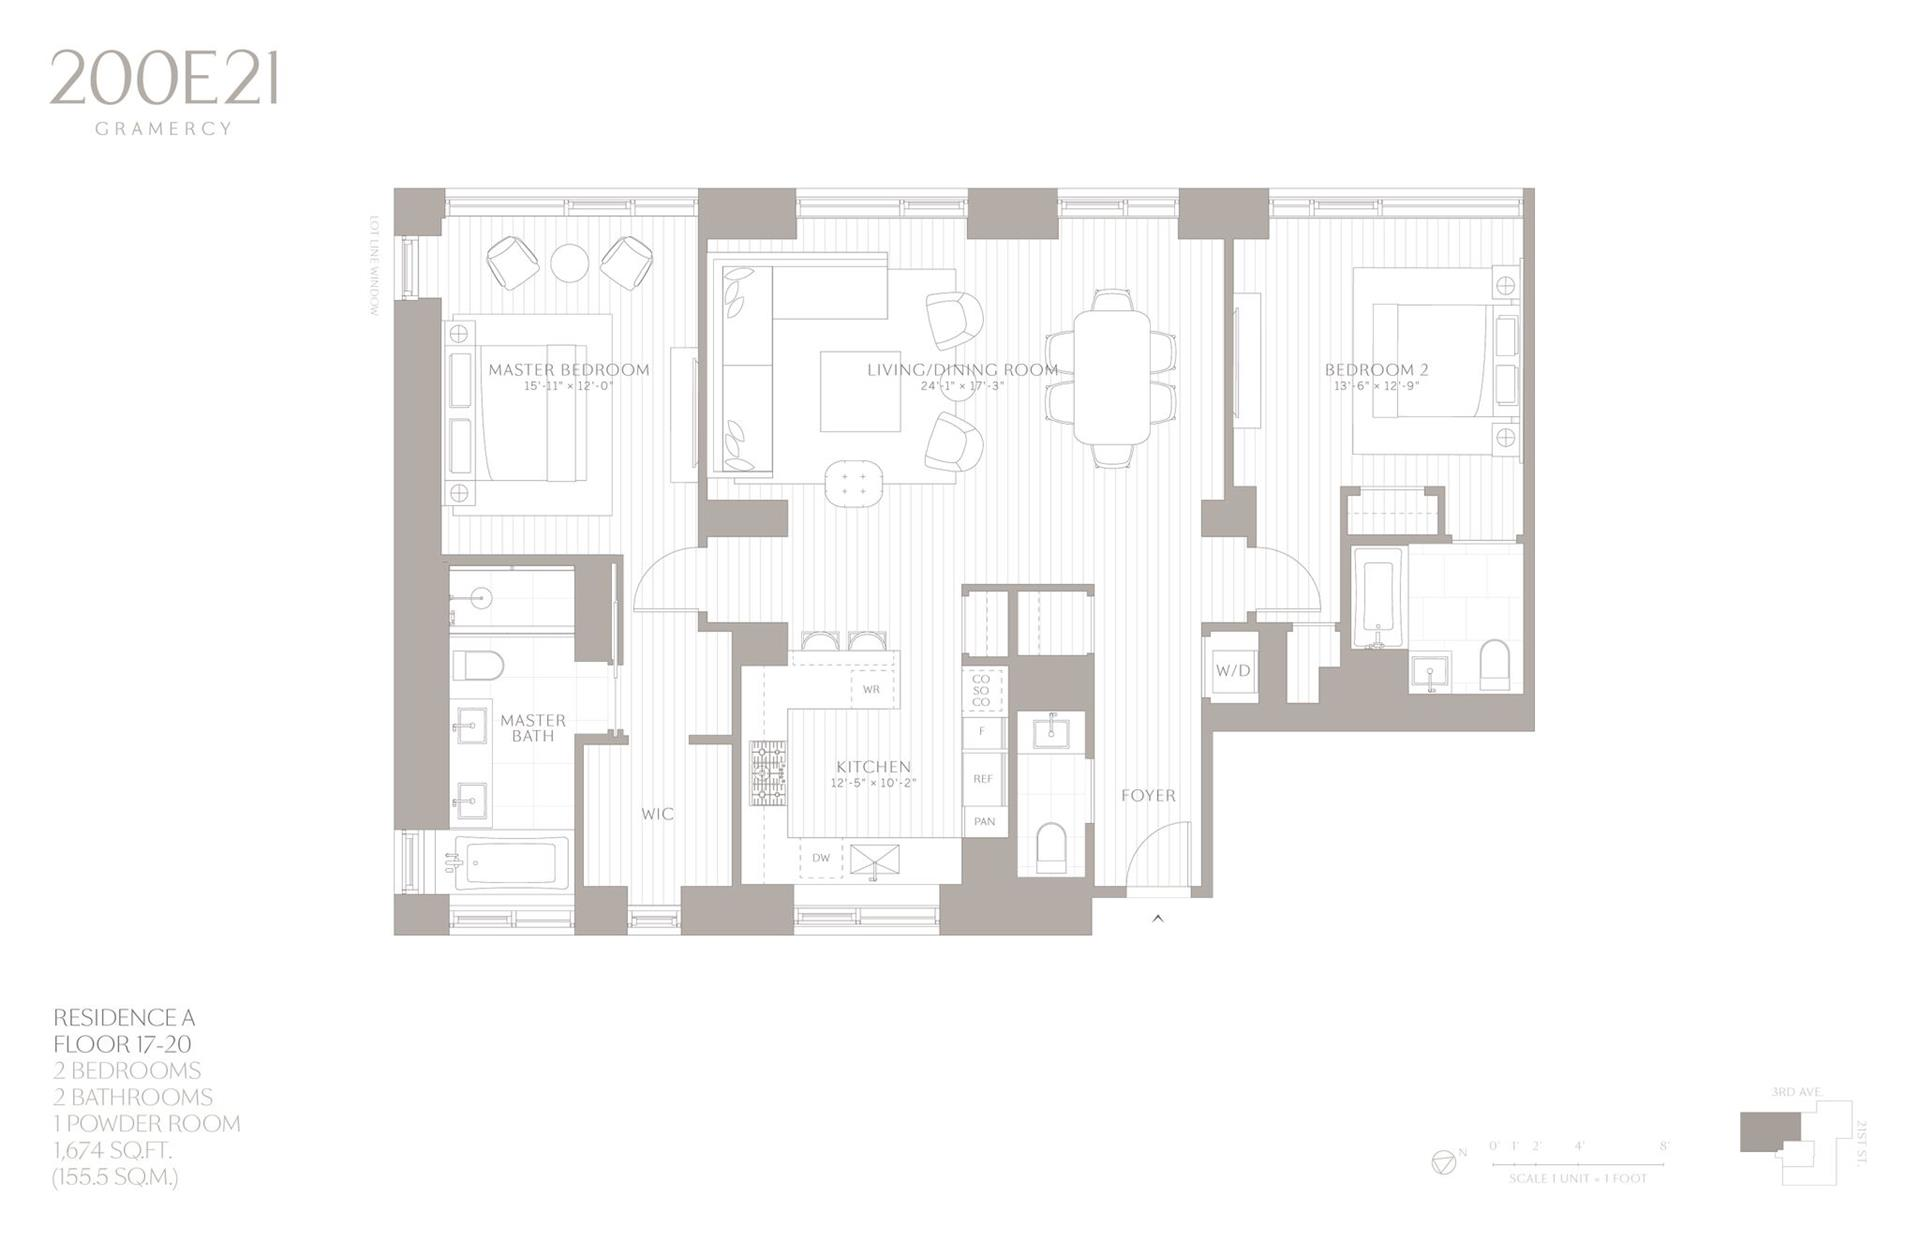 Floor plan of 200 East 21st St, 17A - Gramercy - Union Square, New York